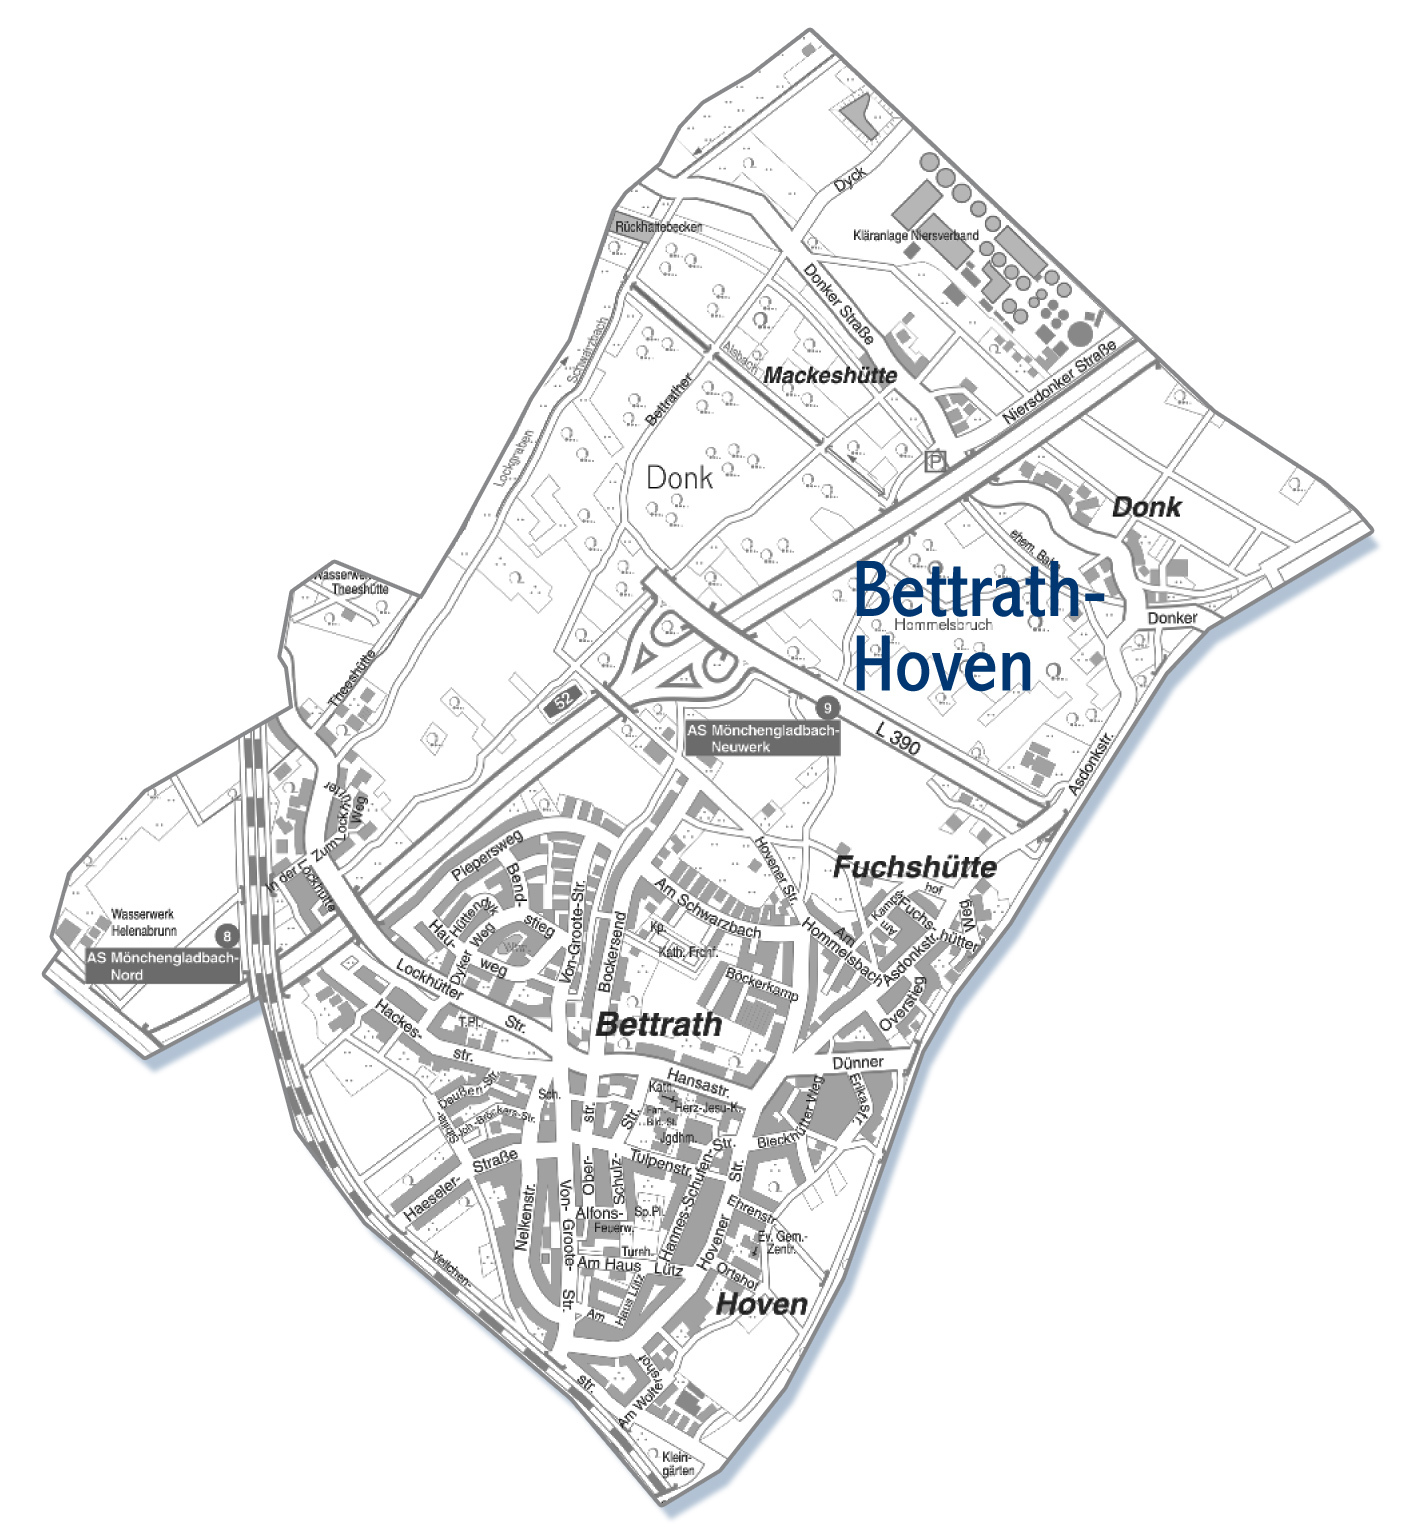 Bettrath-Hoven